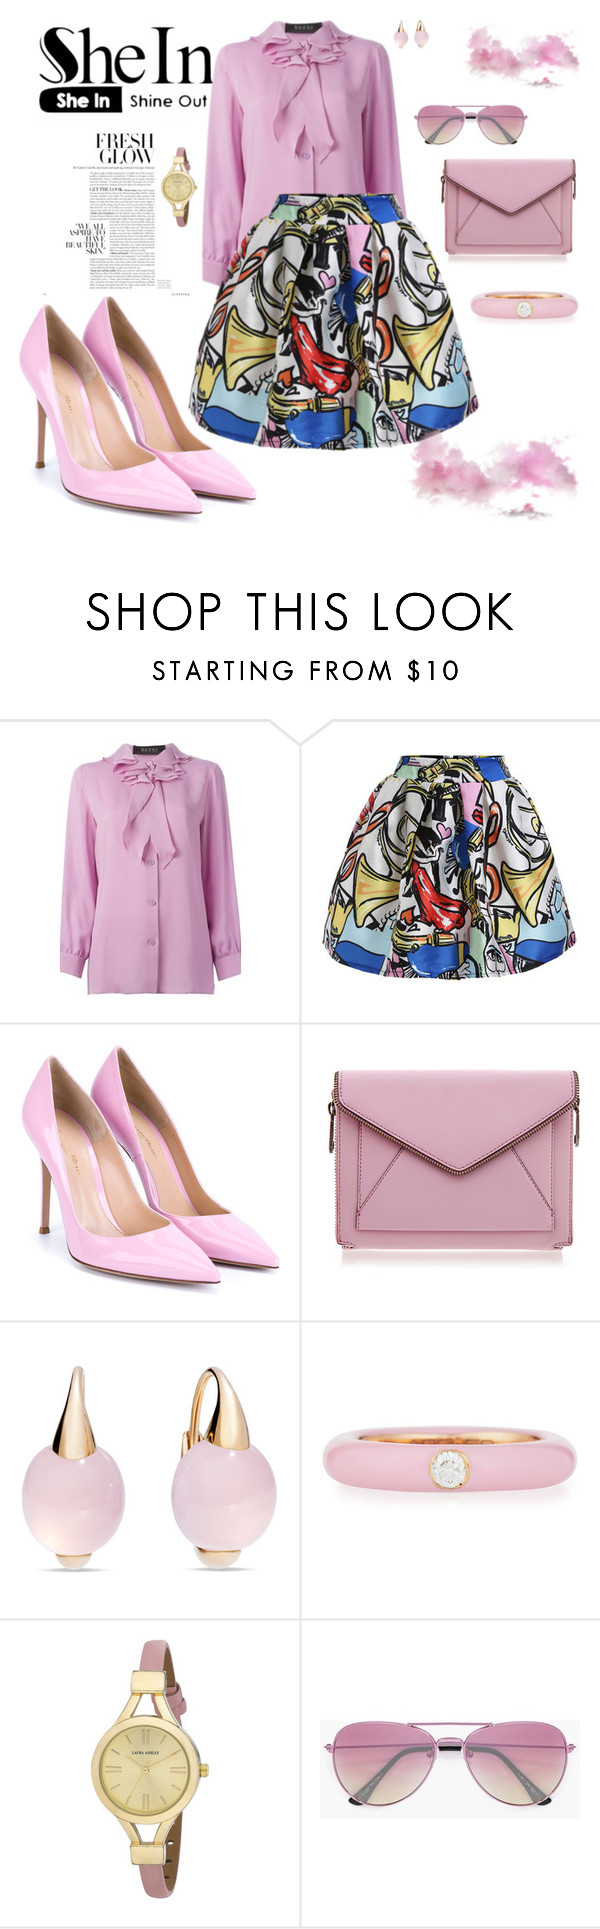 """""""Fresh glow"""" by agnesmakoni ❤ liked on Polyvore featuring Gucci, Gianvito Rossi, Rebecca Minkoff, Pomellato, Adolfo Courrier, Laura Ashley and Boohoo"""